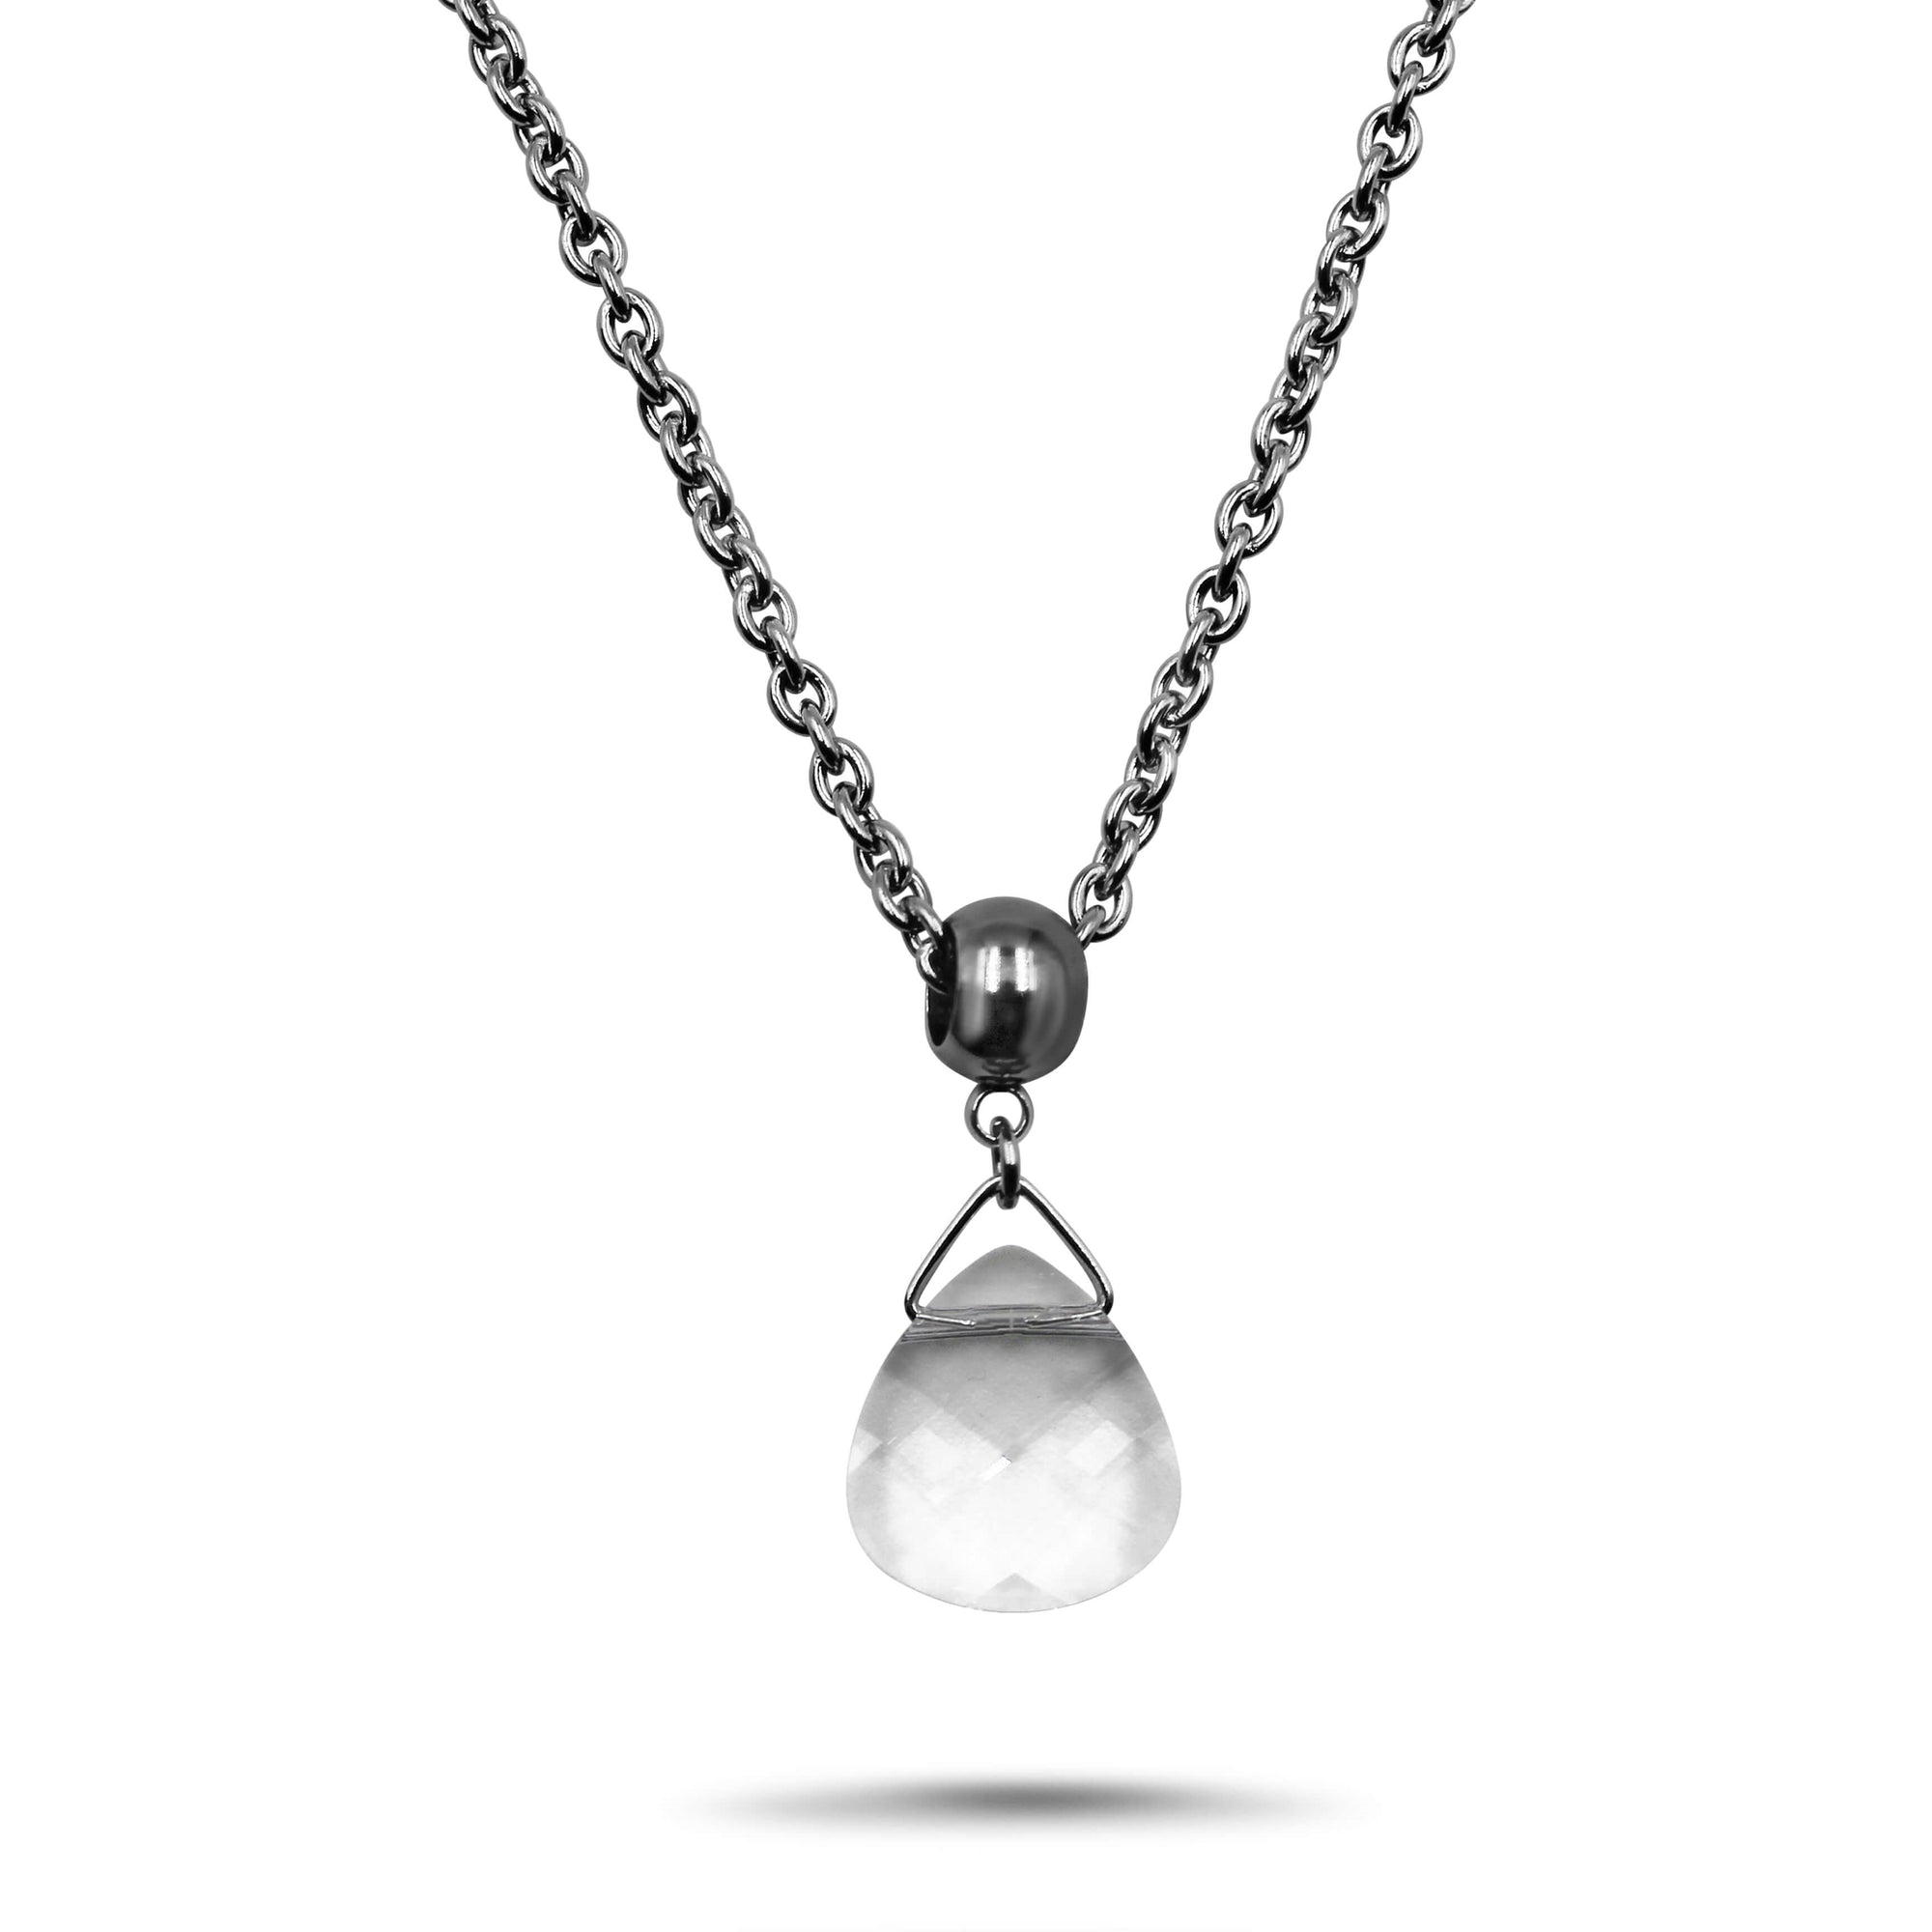 Clear Swarovski Crystal Necklace - Creative Jewelry by Marcia - Asymmetrical Jewelry - Timeless Jewelry